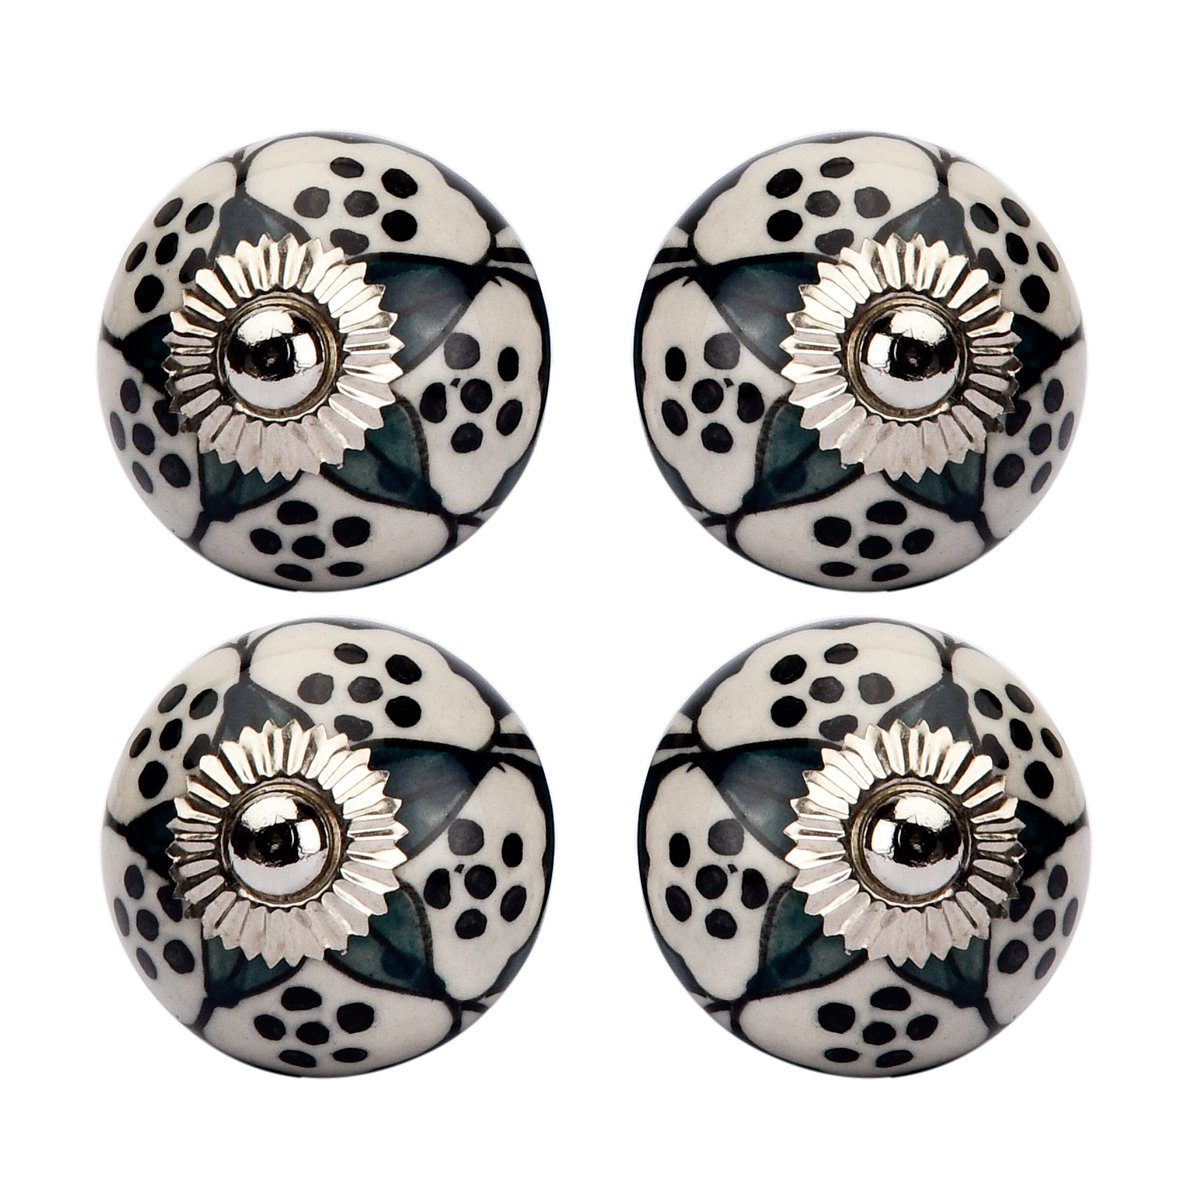 Ceramic Door Knobs Kitchen Cupboard Knobs Drawer Pulls Cabinet Knobs Shabby Chic Knobs Decorative Indian Handicraft Knobs and Pulls 4 Pcs. (White) Amber Shine